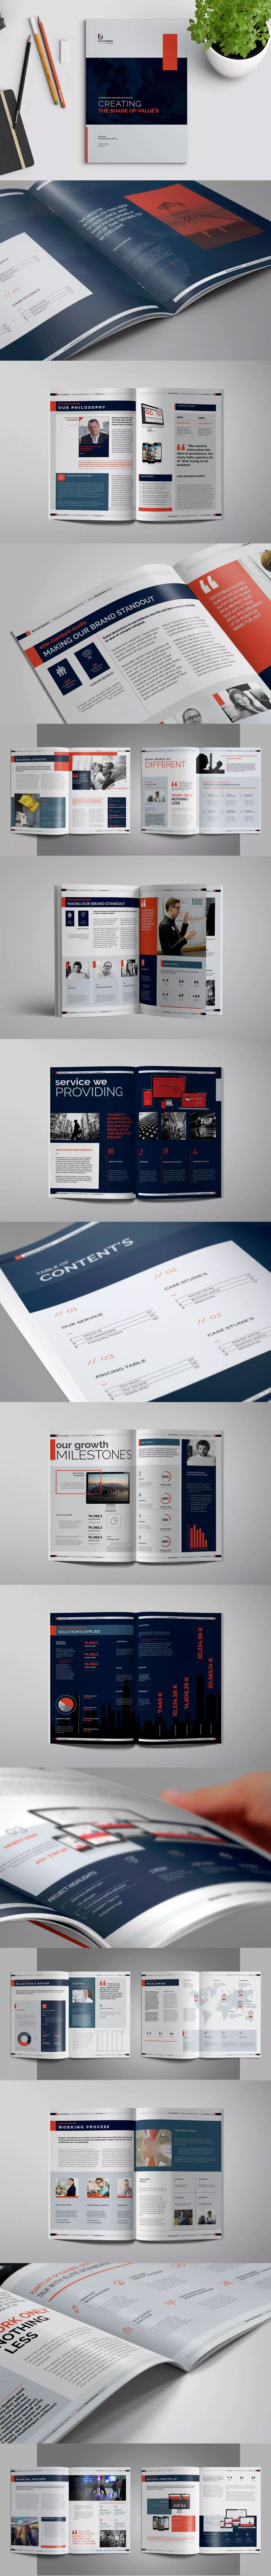 Annual Report Template InDesign INDD A4 anf